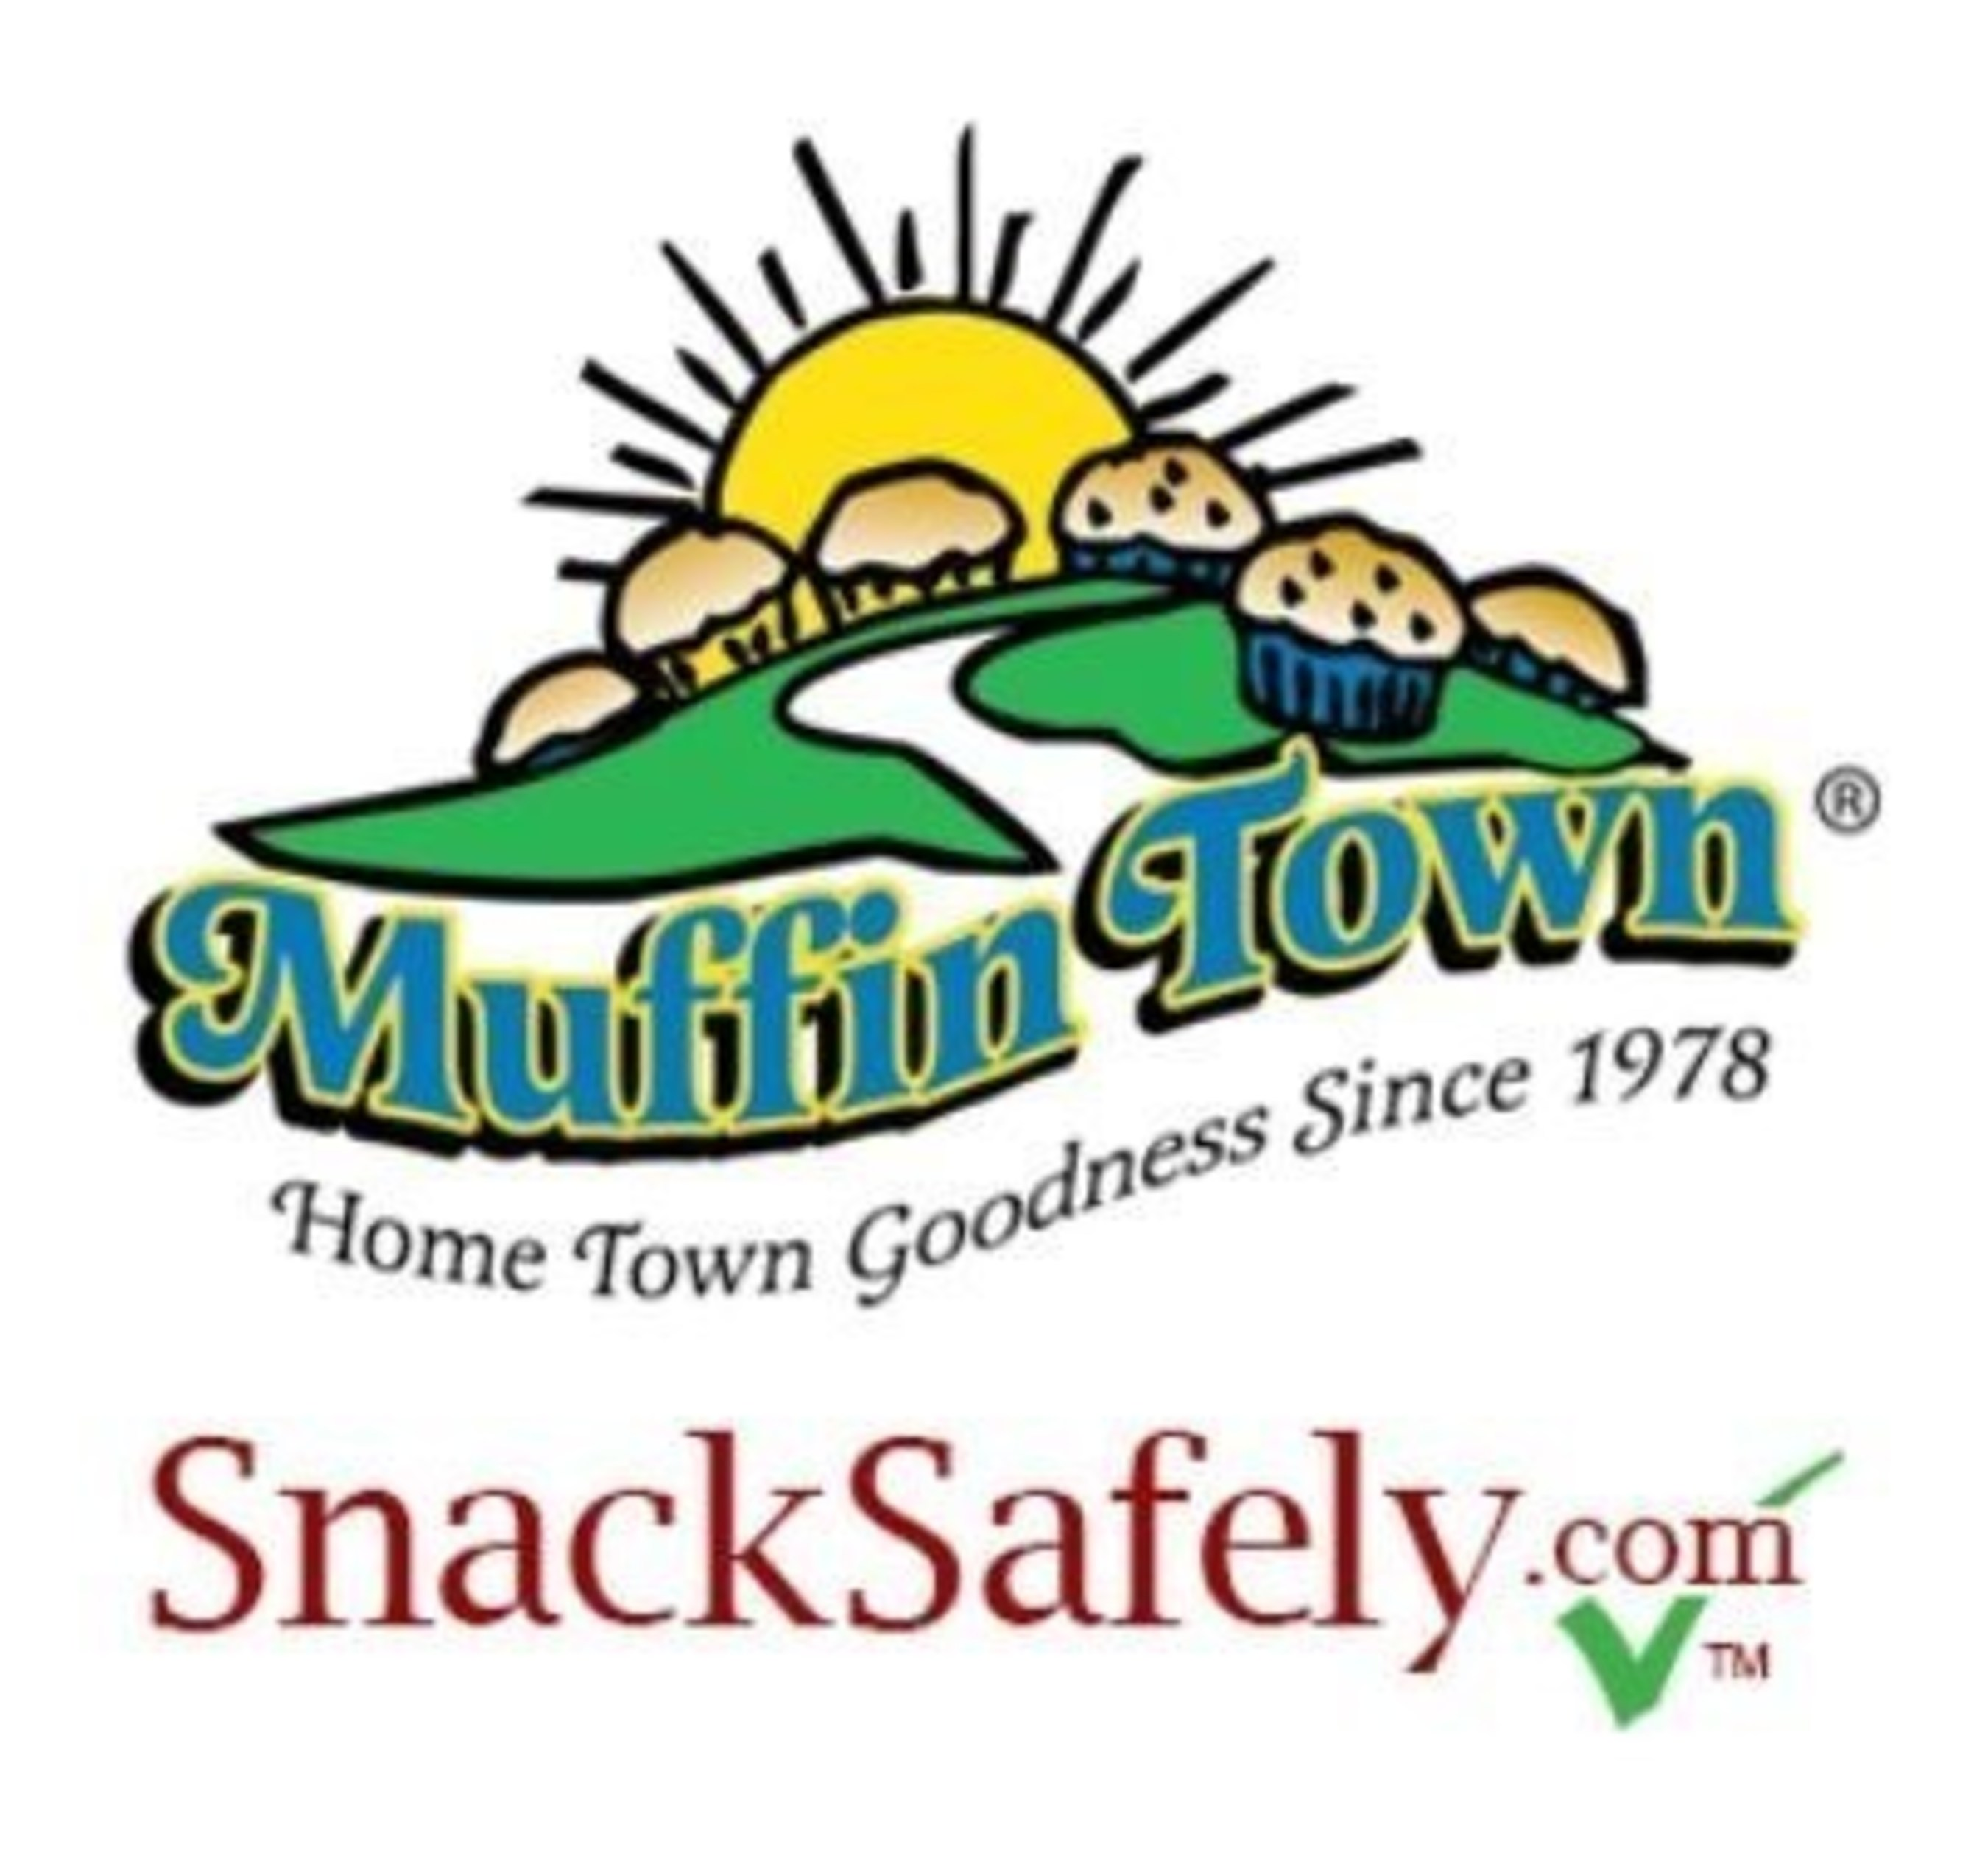 JSB Industries Partners With SnackSafely.com